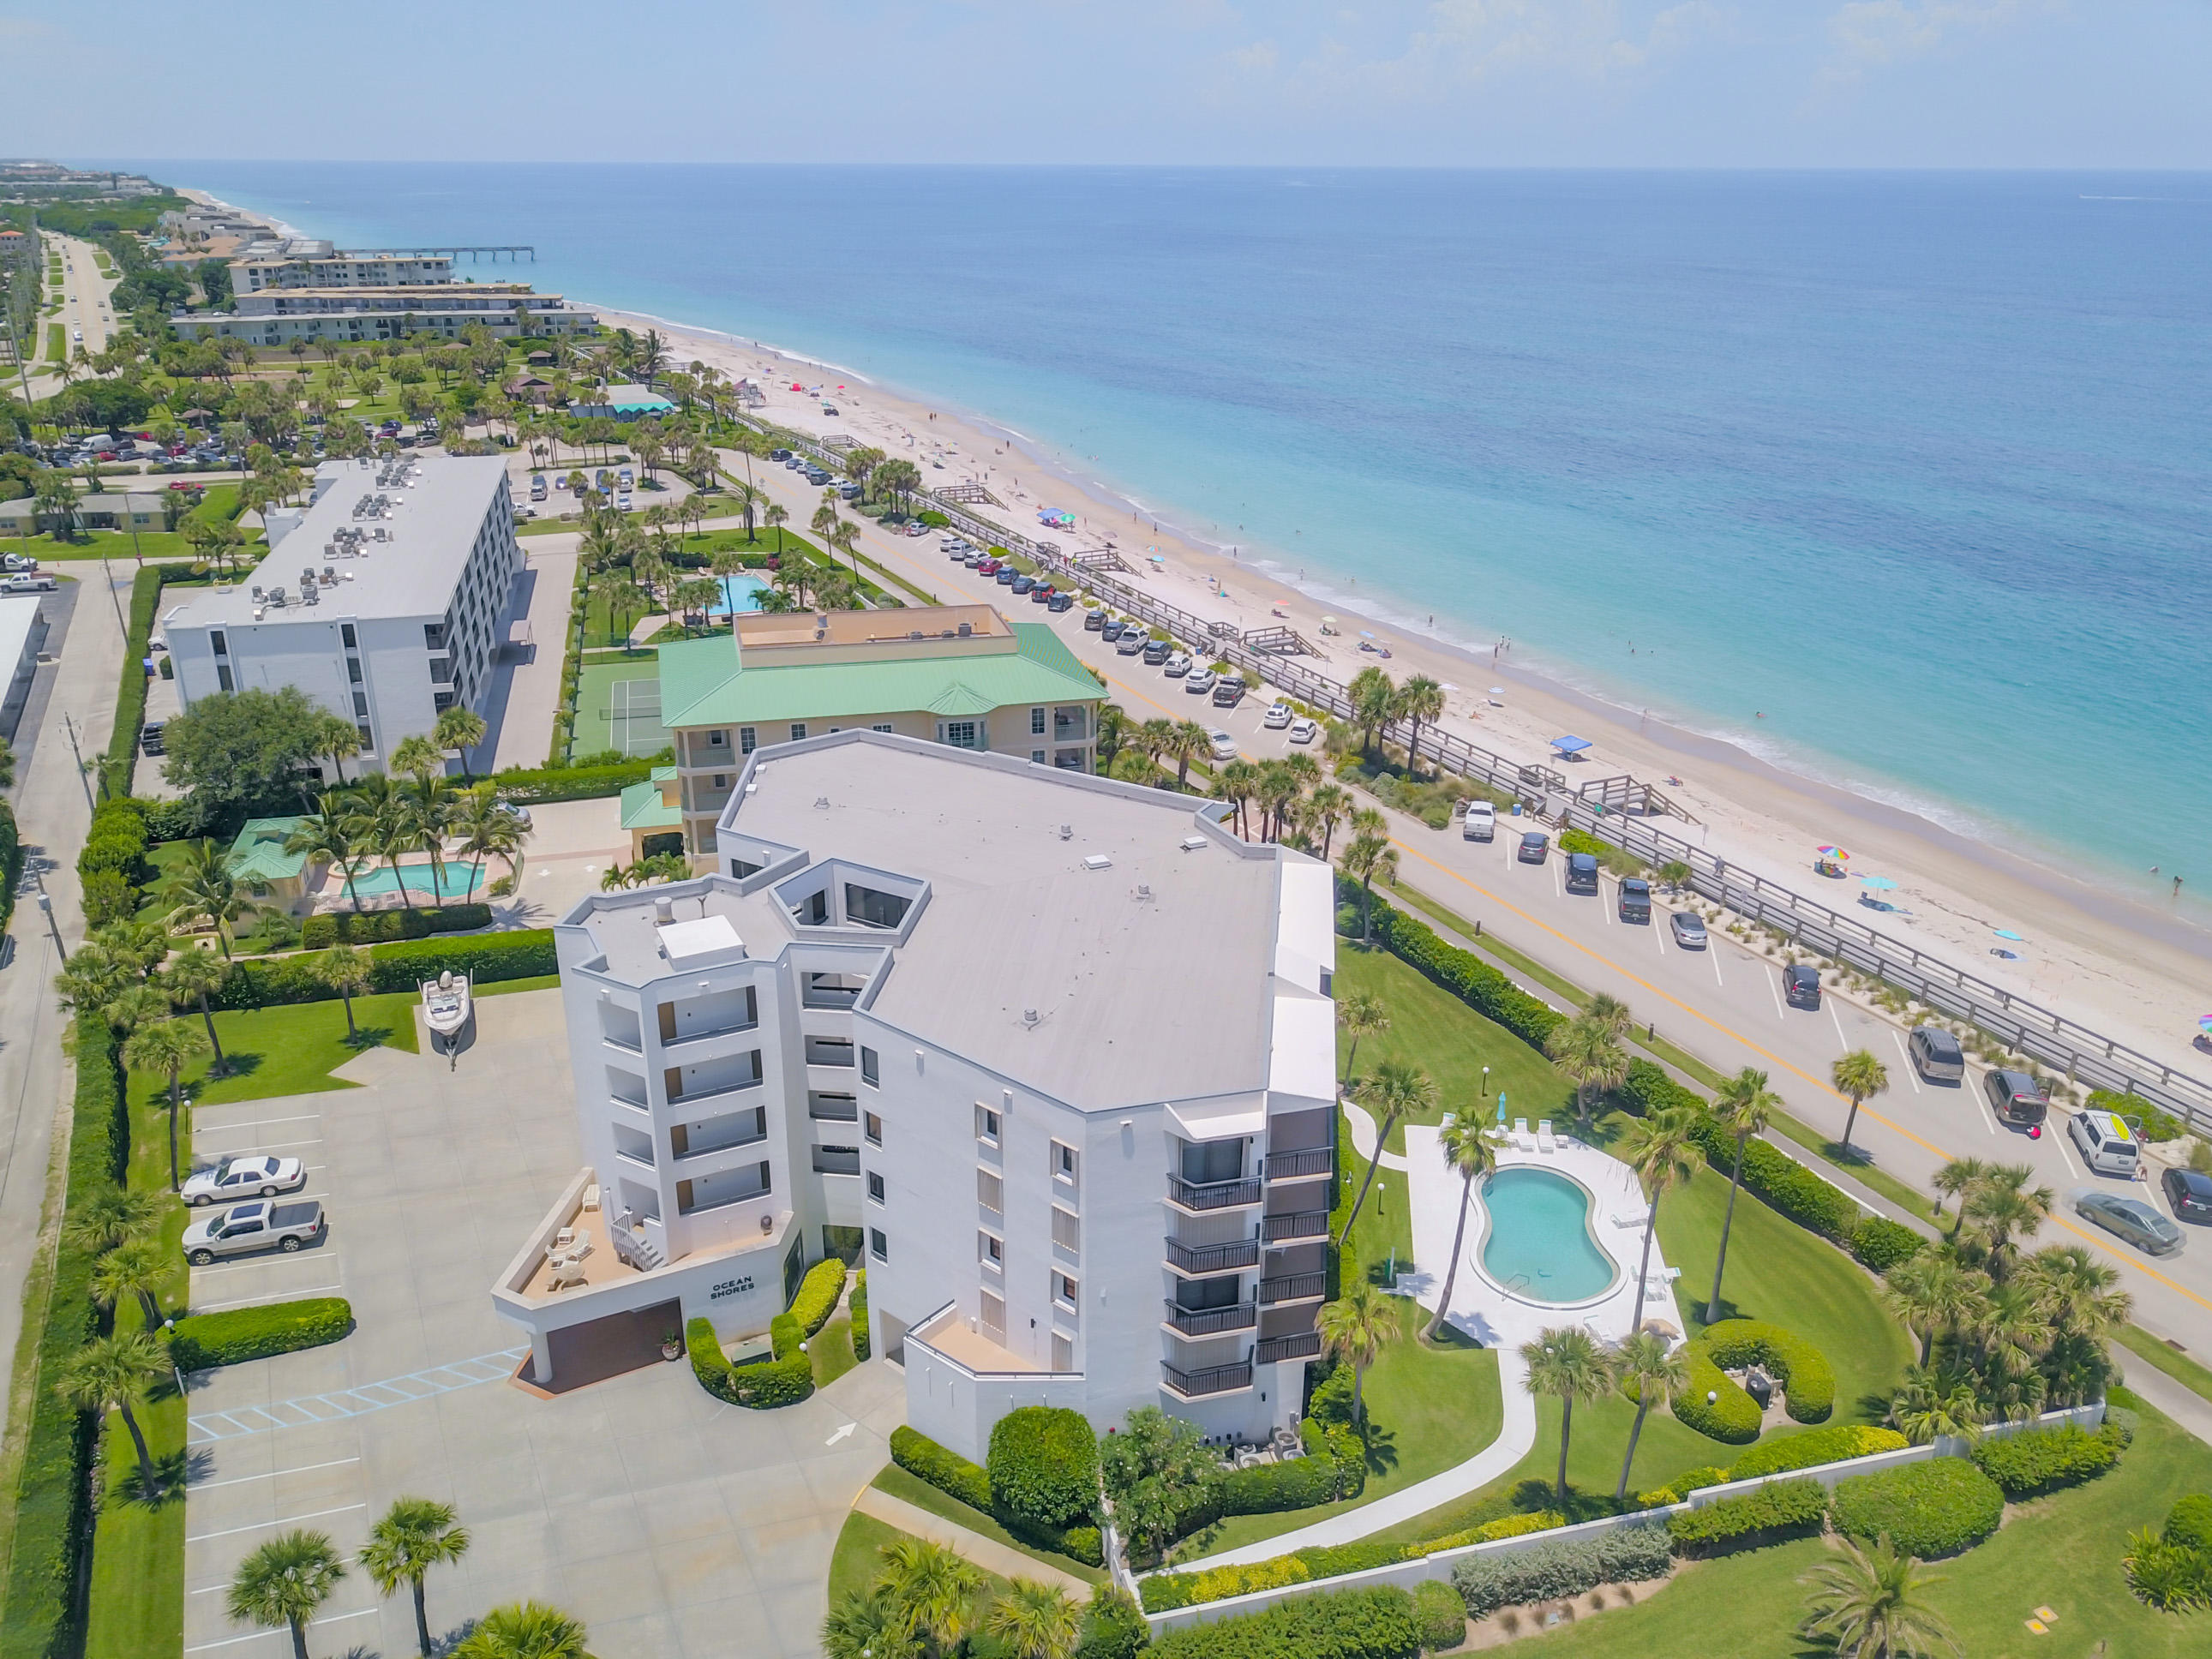 4101 Ocean Unit 4a, Vero Beach, Florida 32963